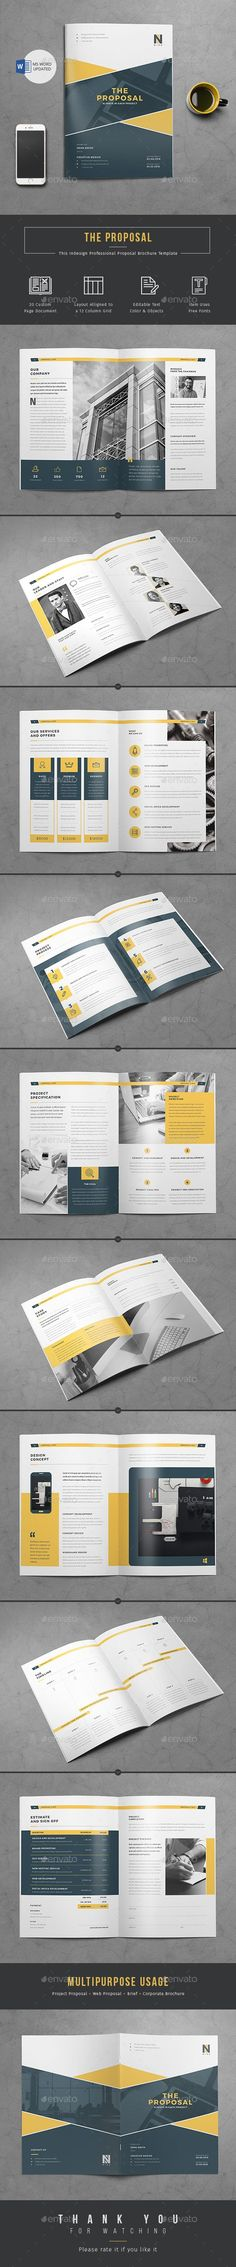 Proposal InDesign/Word Template, 20 page Professional Business Proposal Template is the best suitable choice to work with. - silk women's blouses, shirts and blouses for ladies, white blouse with blue stars *sponsored https://www.pinterest.com/blouses_blouse/ https://www.pinterest.com/explore/blouses/ https://www.pinterest.com/blouses_blouse/low-cut-blouse/ https://www.amazon.com/Womens-Shirts/b?ie=UTF8&node=2368365011